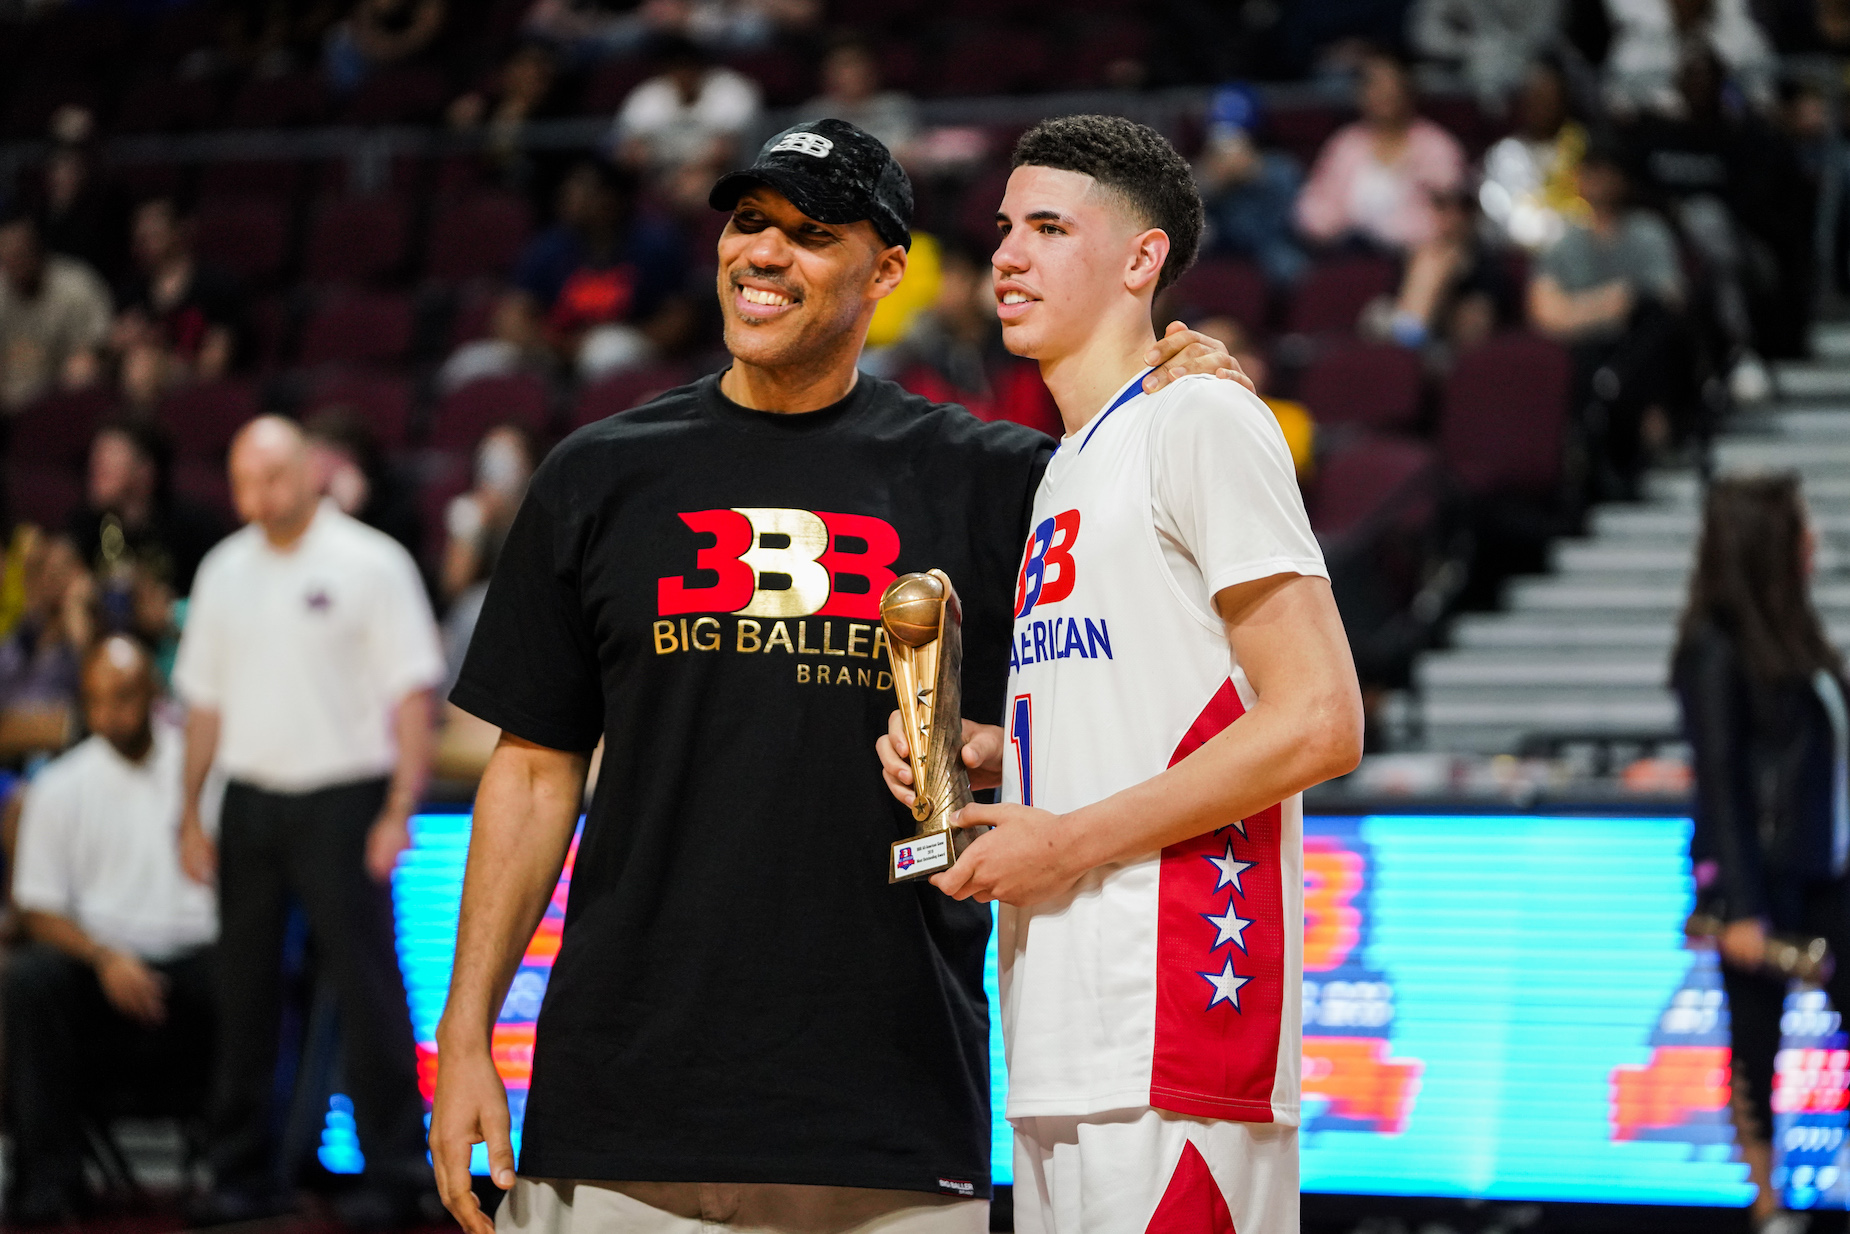 LaMelo Ball could make his father, Lavar Ball's, nightmare come true at the NBA draft.